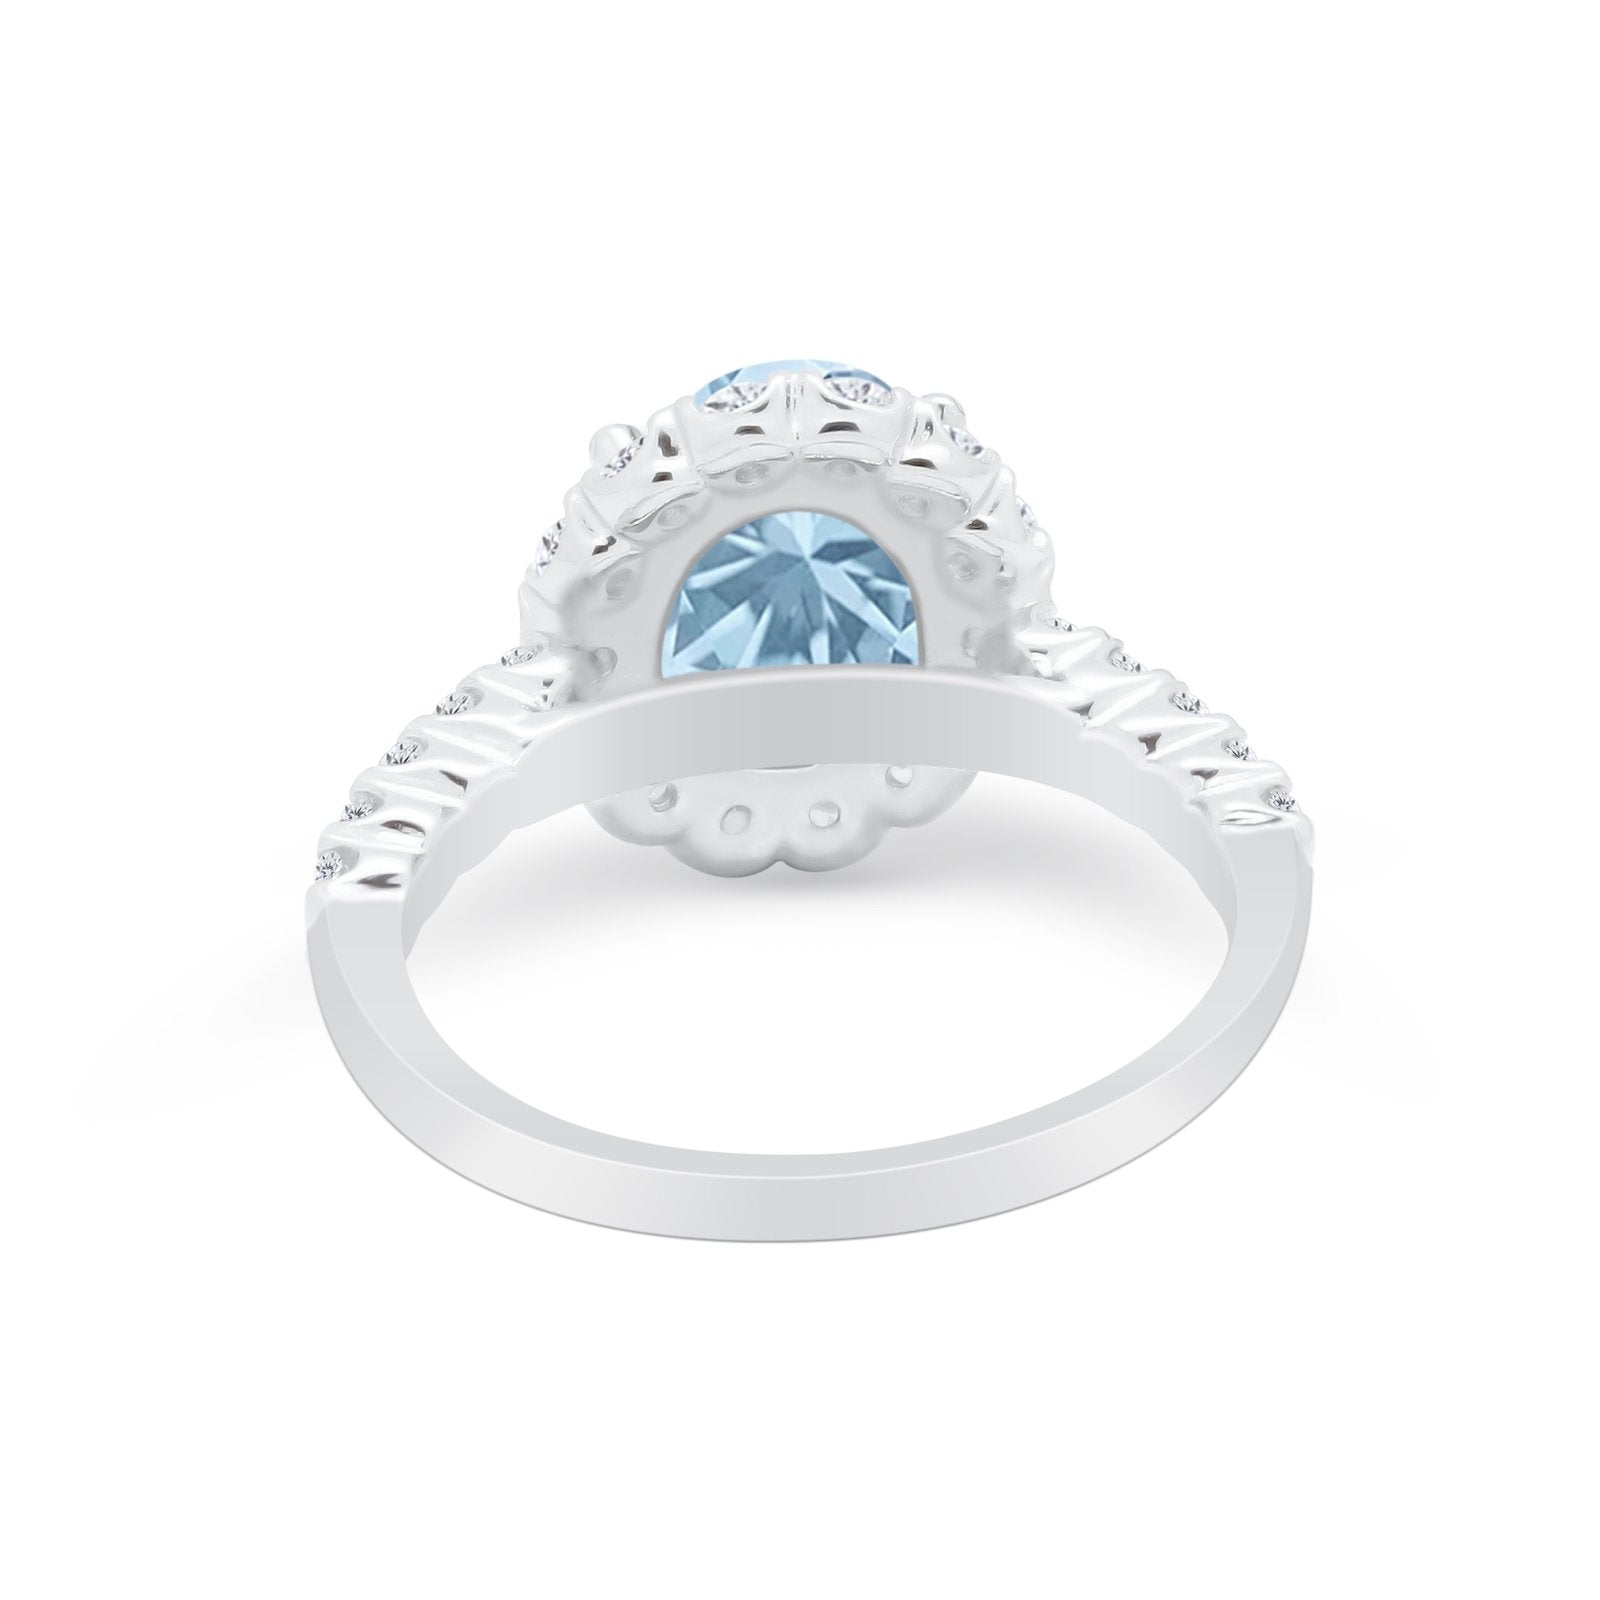 Solitaire Accent Wedding Ring Simulated Cubic Zirconia 925 Sterling Silver